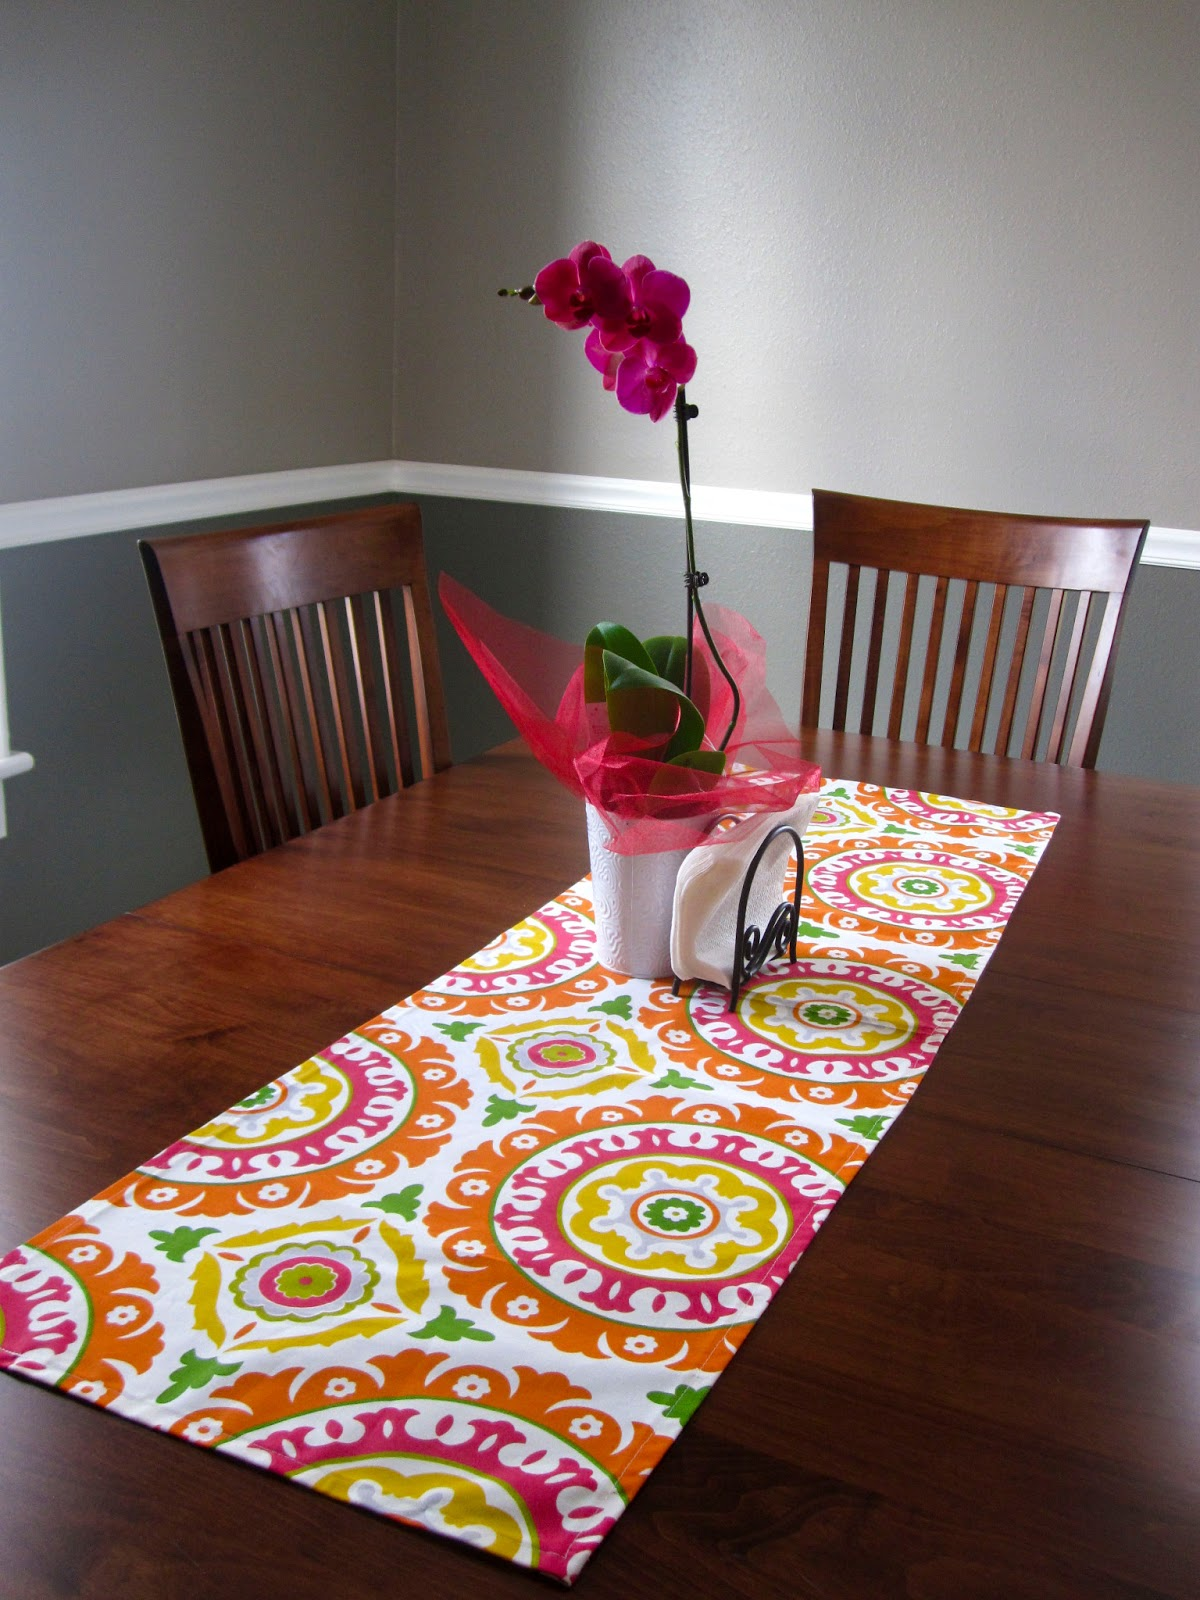 the homemade calling diy 5 table runner. Black Bedroom Furniture Sets. Home Design Ideas